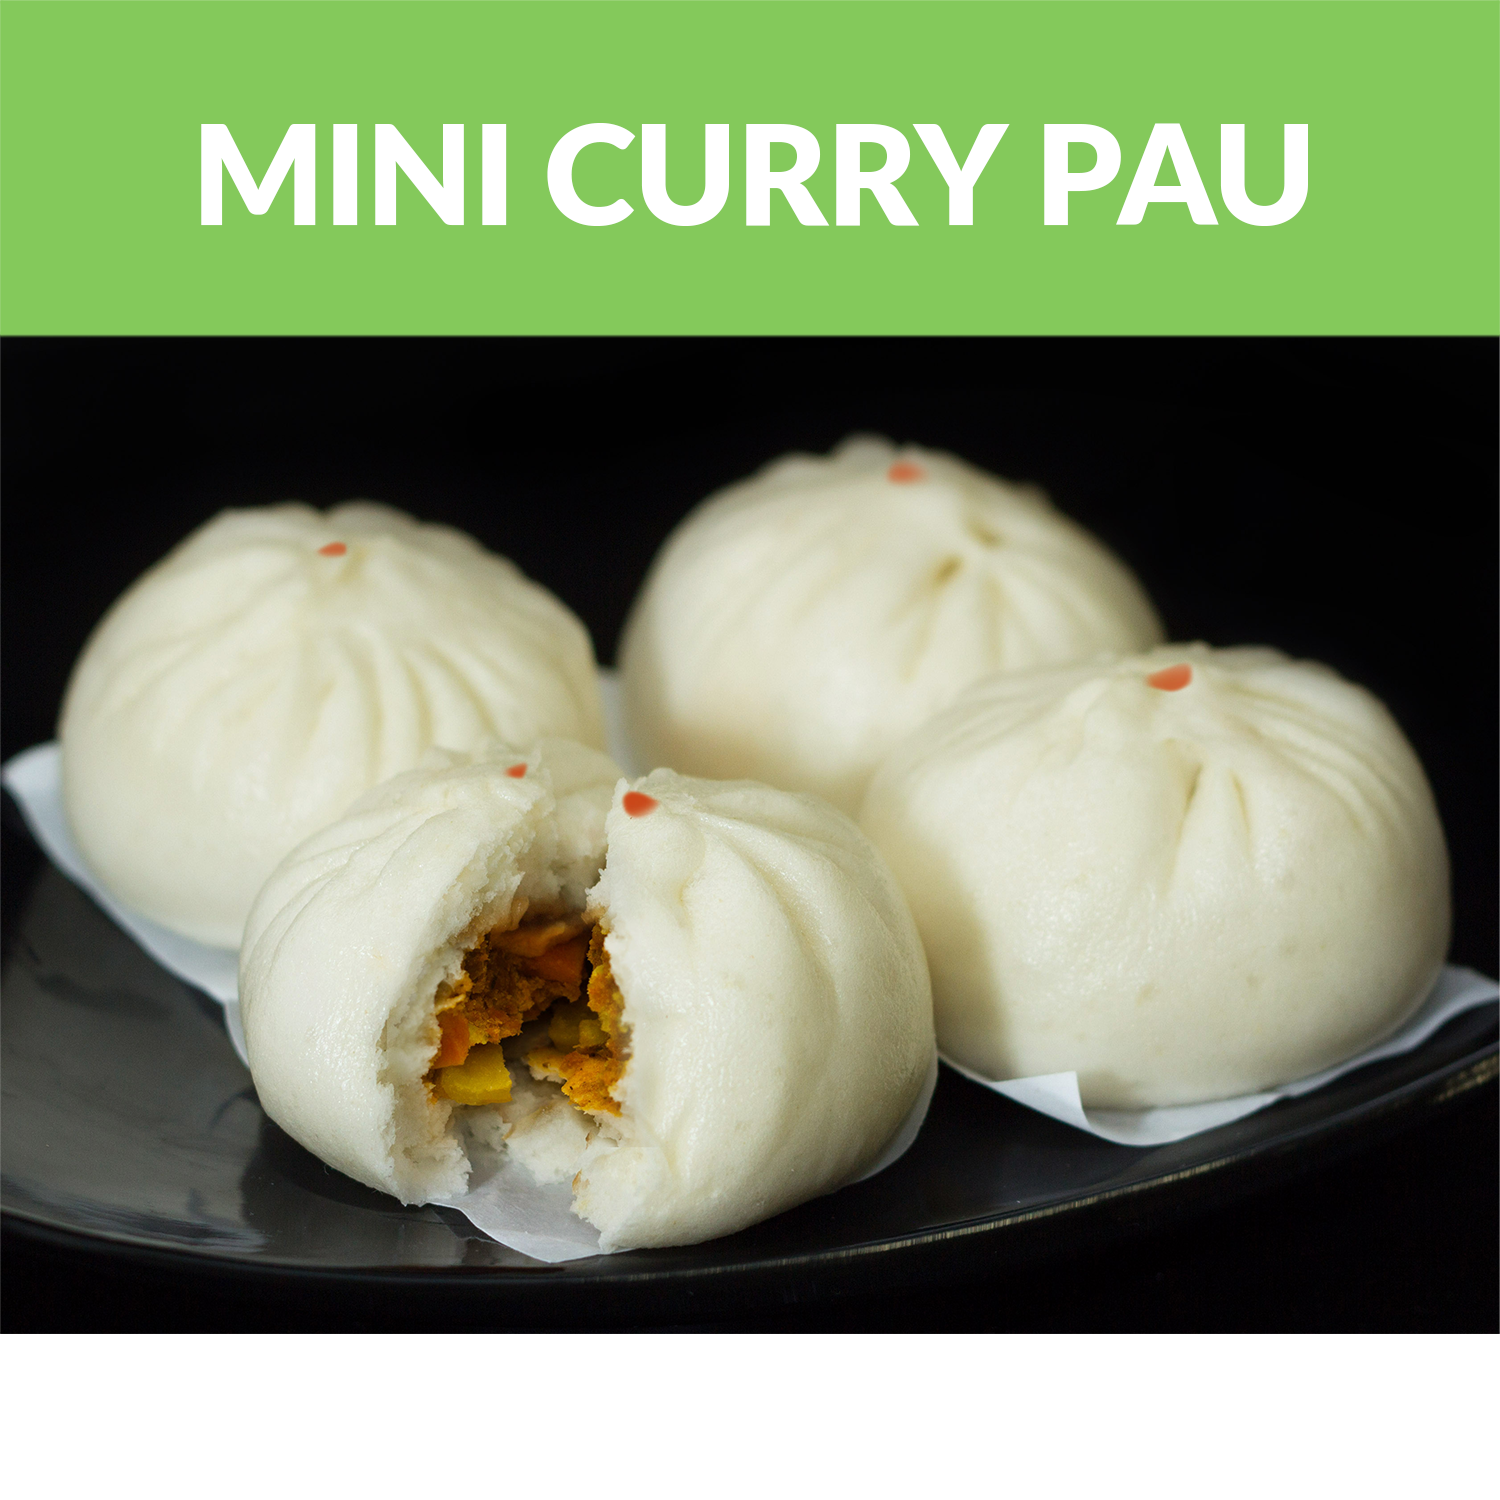 Products-Paus-Mini-Curry-Pau.png